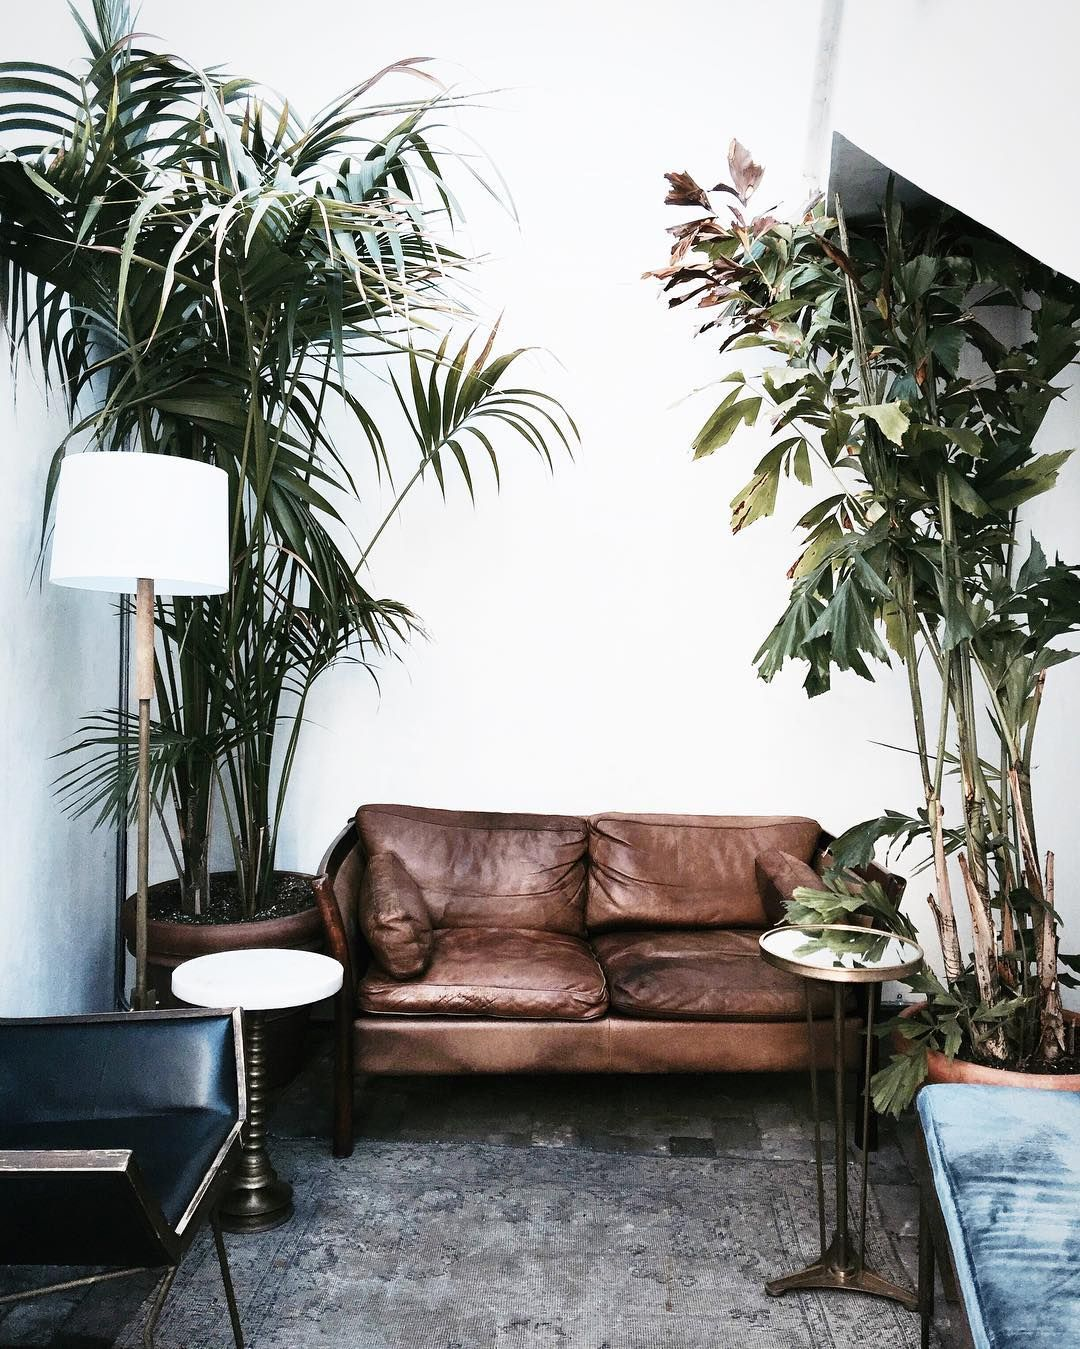 Boho urban jungle interieur met vintage leren bank   TREND  Urban Jungle   Pinterest   Boho